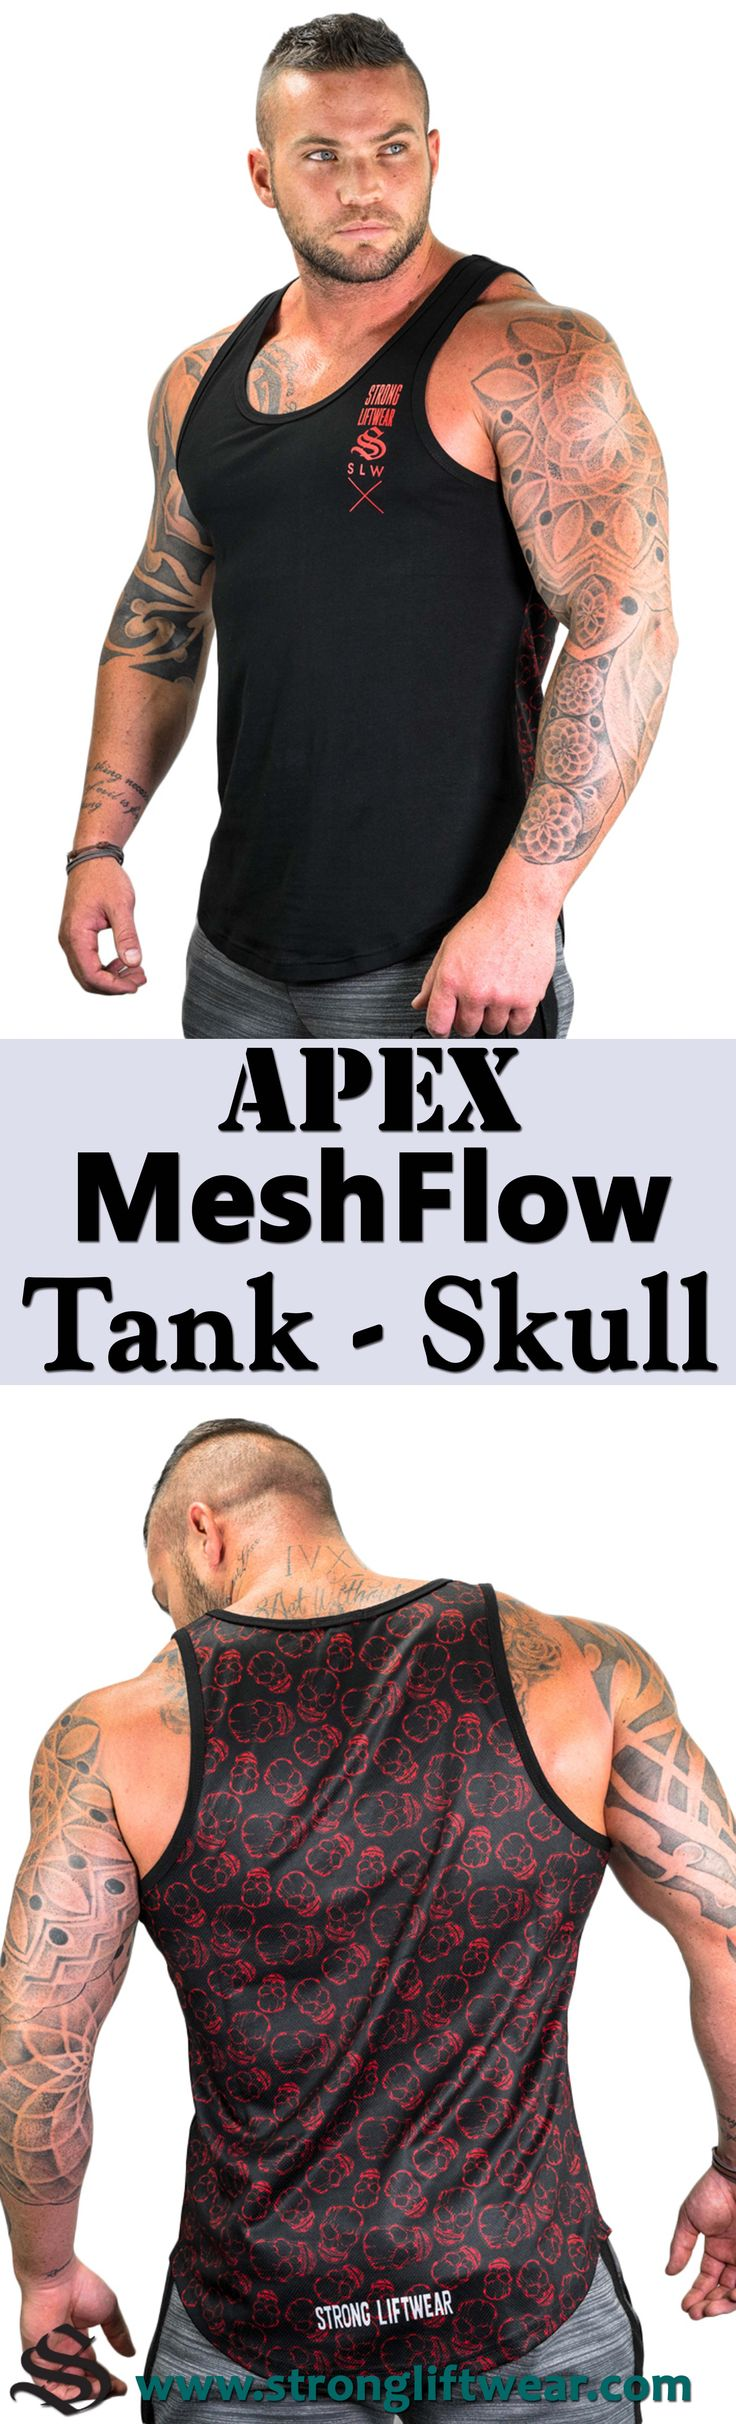 Introducing the MeshFlow Tank! A modern masterpiece of singlet design. Tapered, waist slimming, shoulder enhancing and made with a fully breathable mesh back and light cotton composite front. │gym wear │fitness wear │fitness clothing │fitness │outfits │workout dress │gym outfits │workout outfits │shorts #gymwear #fitnesswear #fitnessclothing #fitness #outfits #workoutdress #gymoutfits #workoutoutfits #shorts